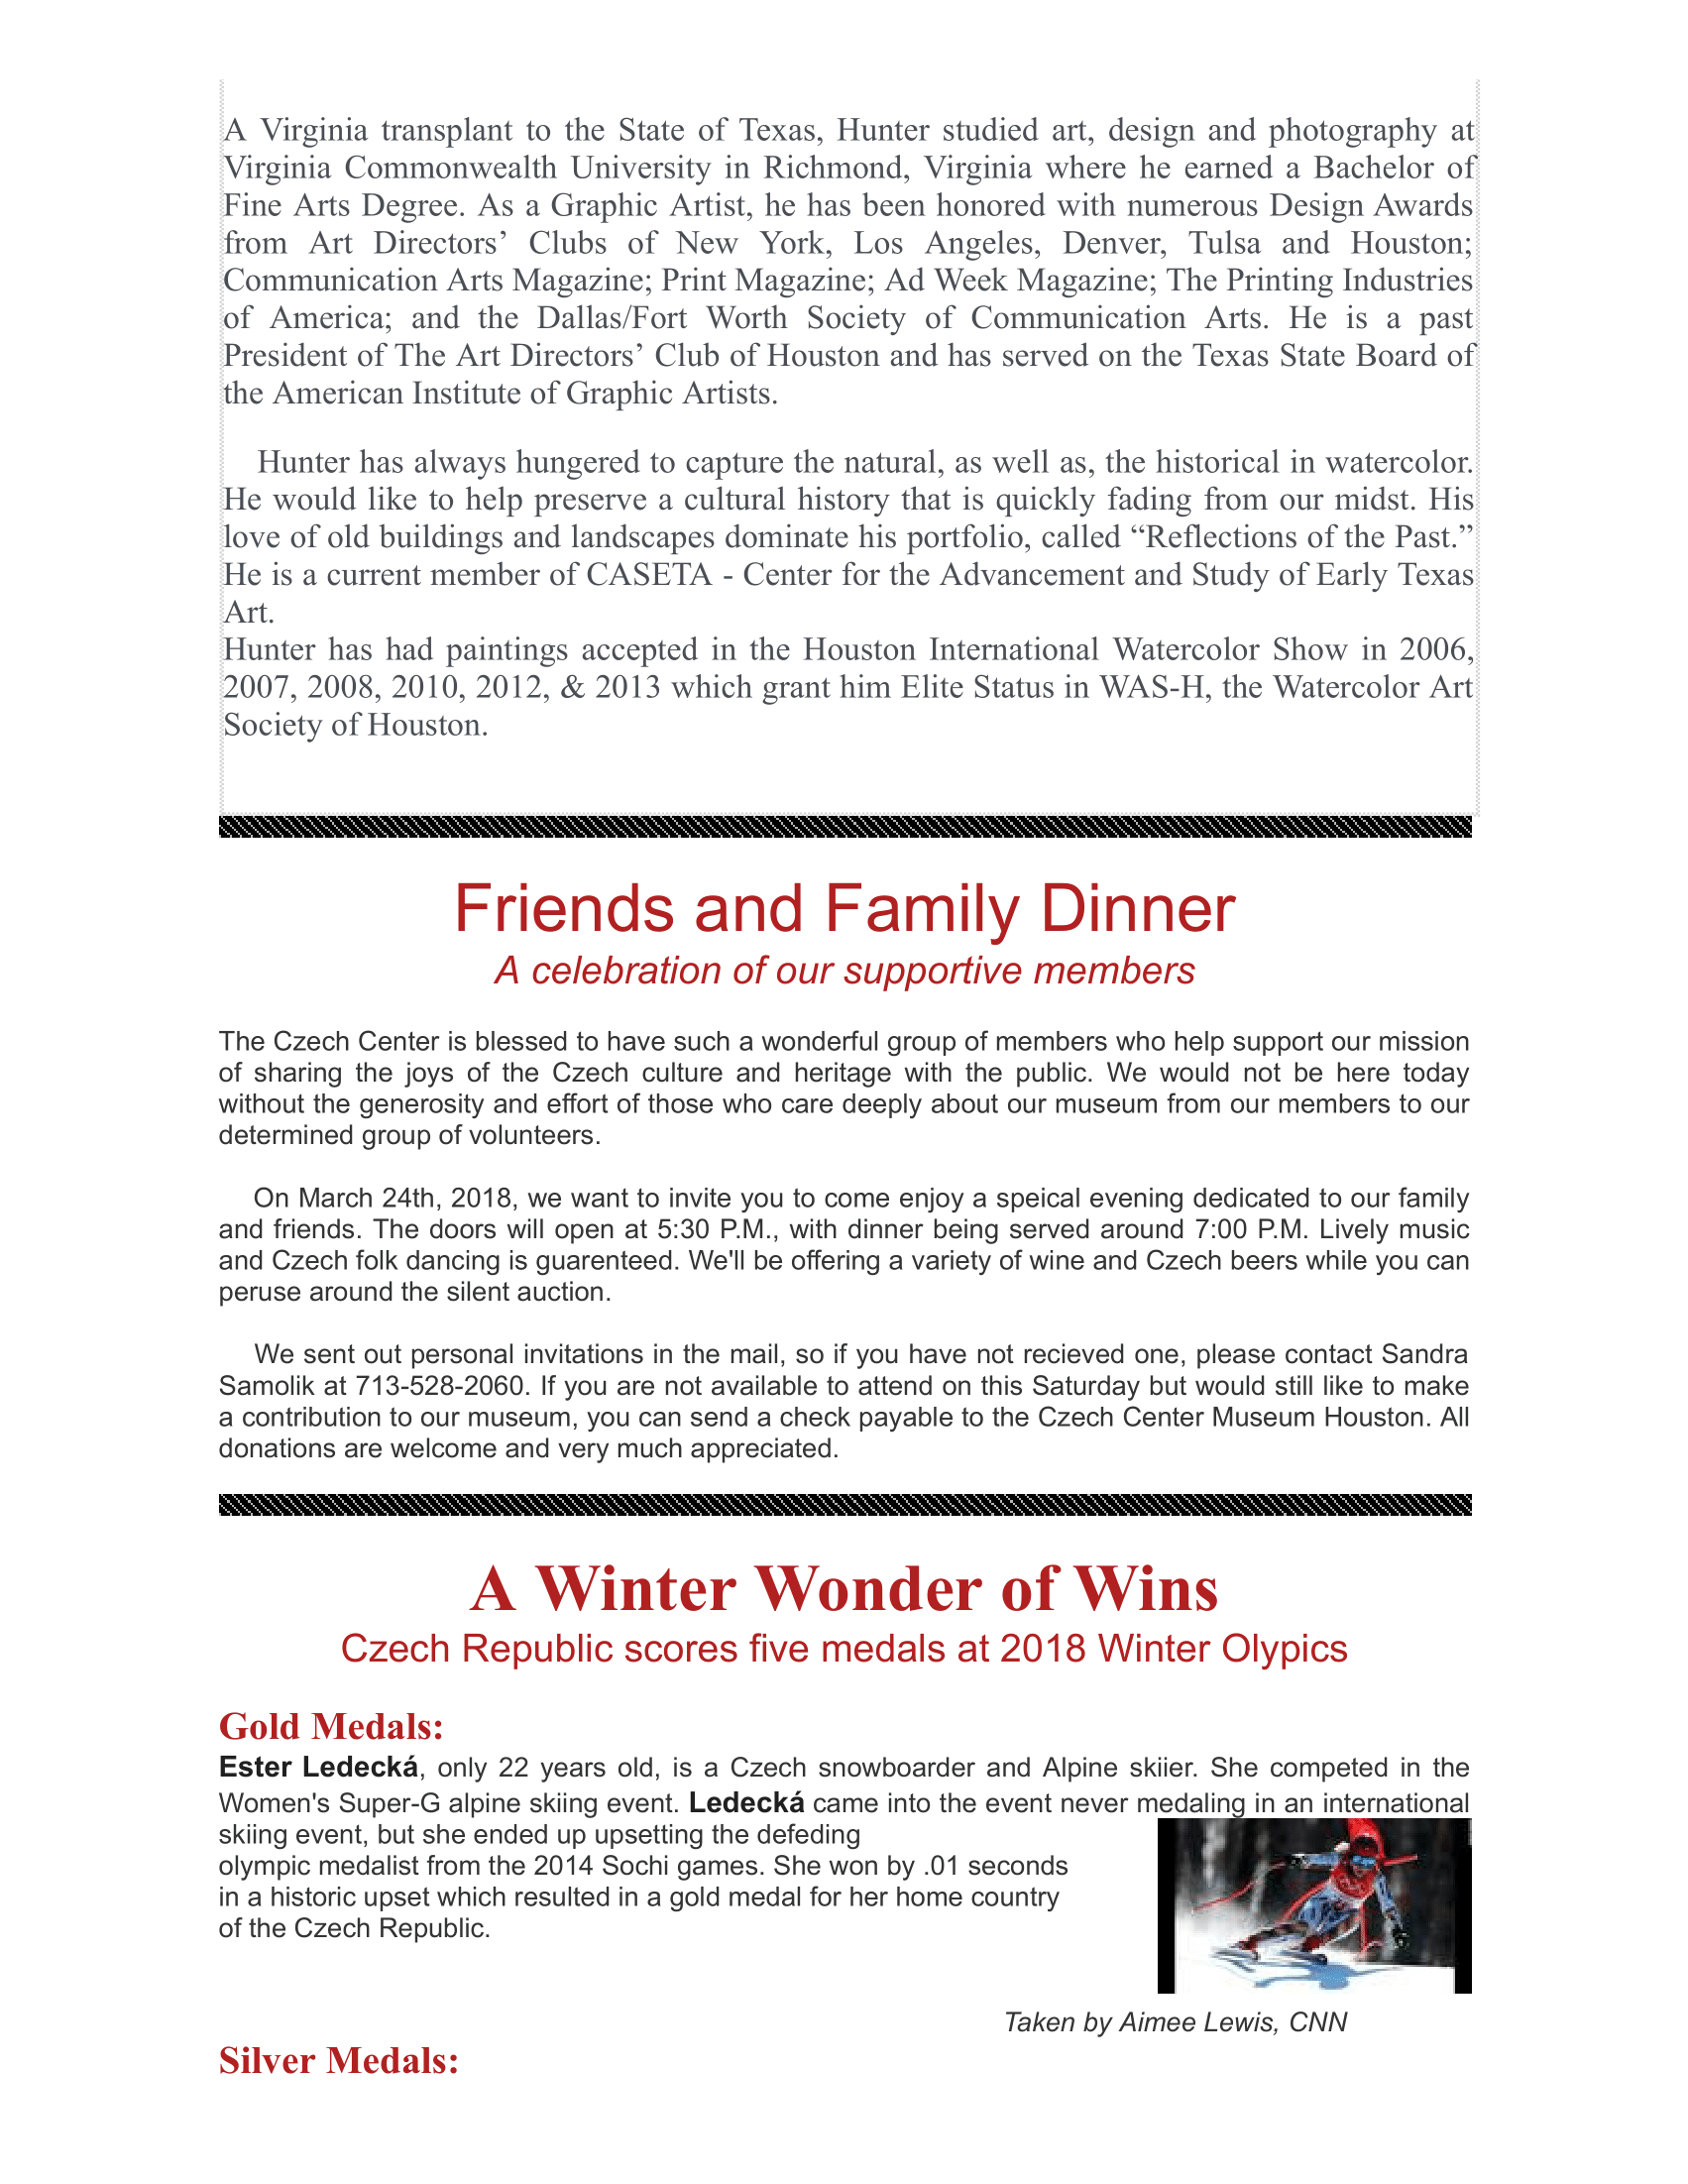 Czech Center Museum Houston Mail - CCMH February Newsletter-08.png